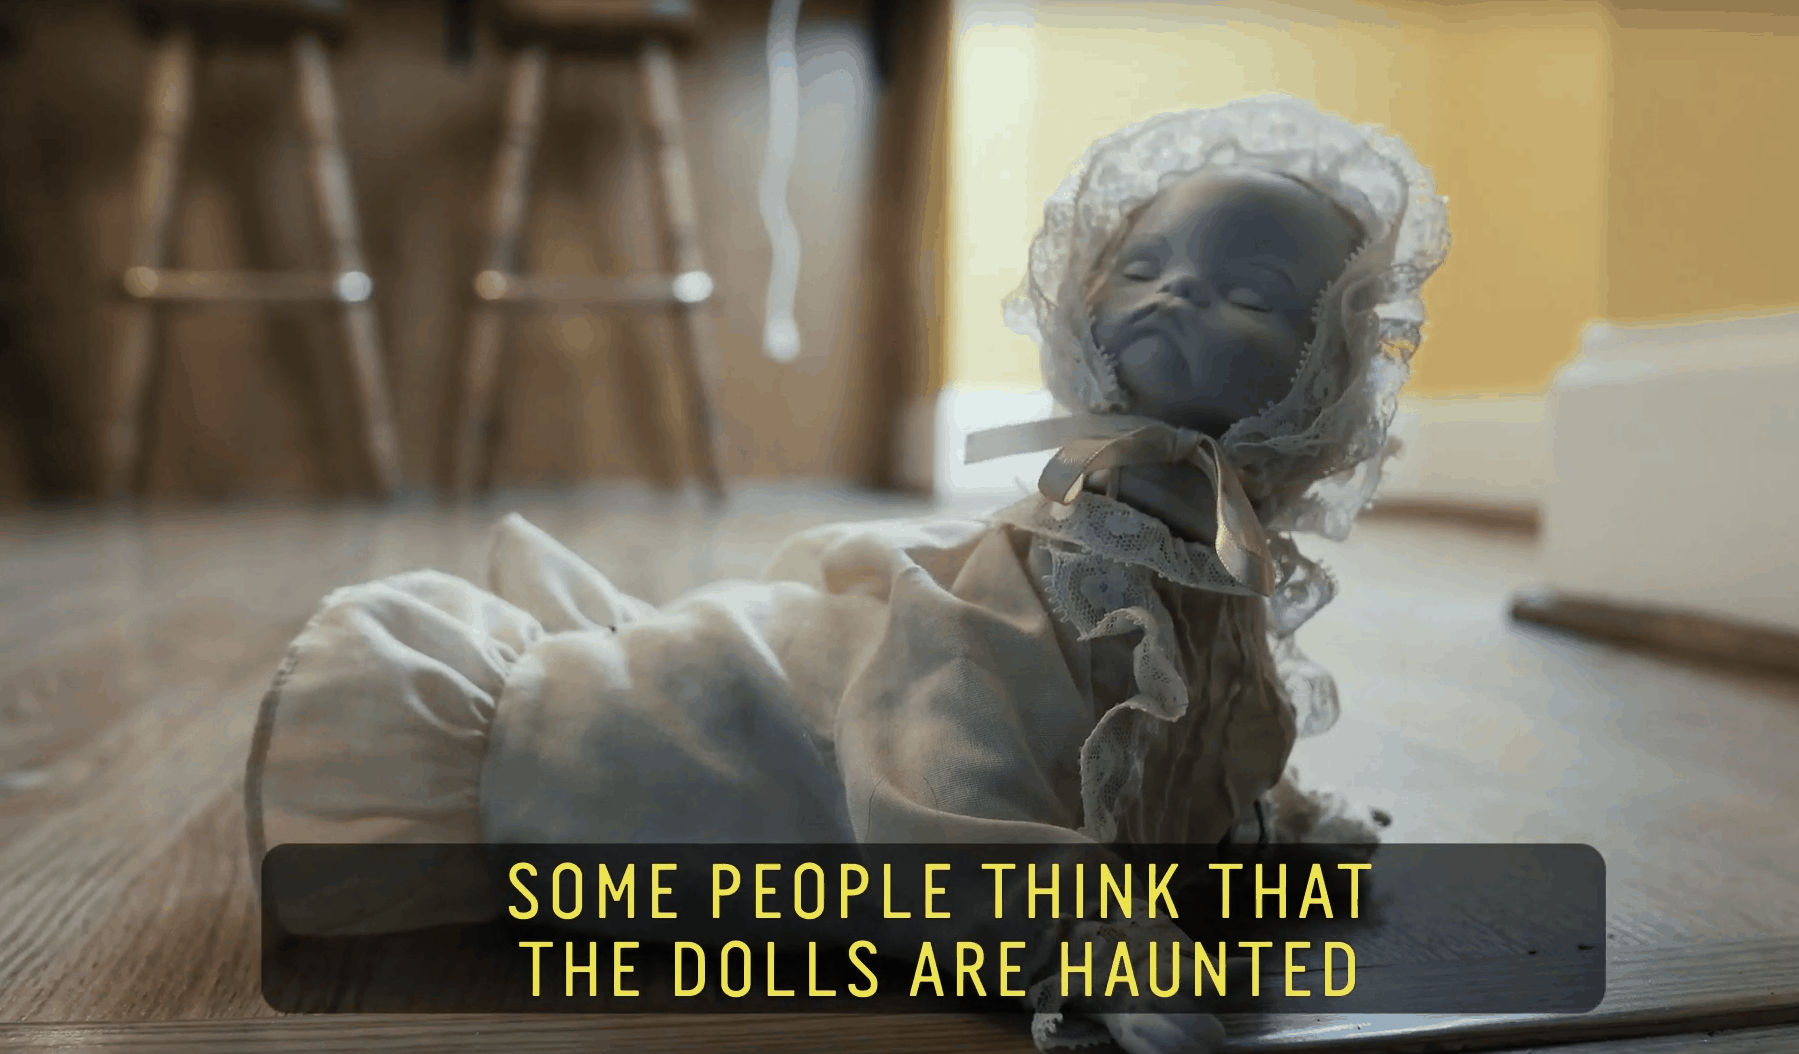 Creepy Doll Video from Our Friends at Unsettling Toys